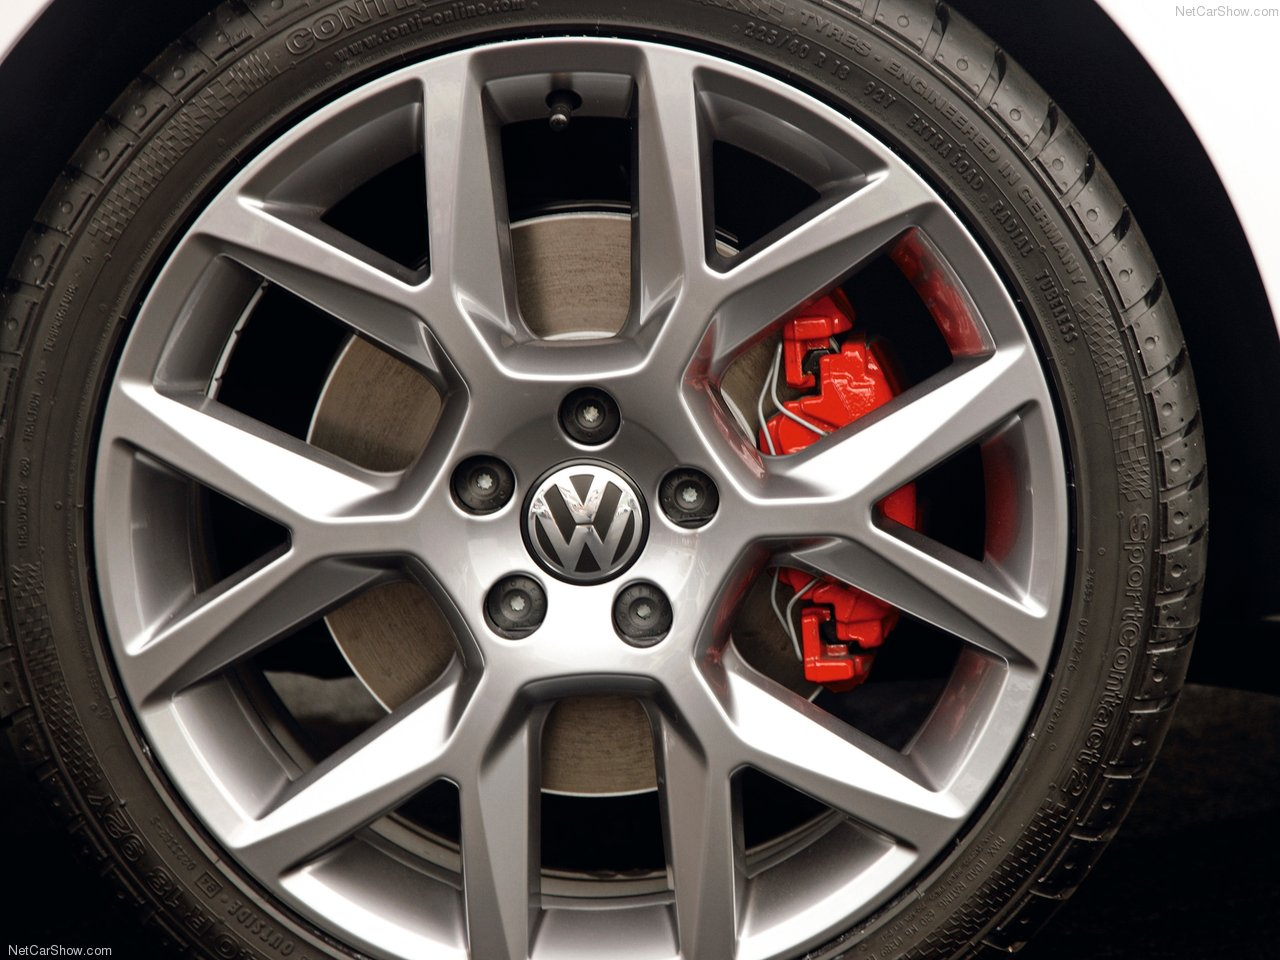 Simple Design Elements That Set The Vw Golf 6 Gti Edition